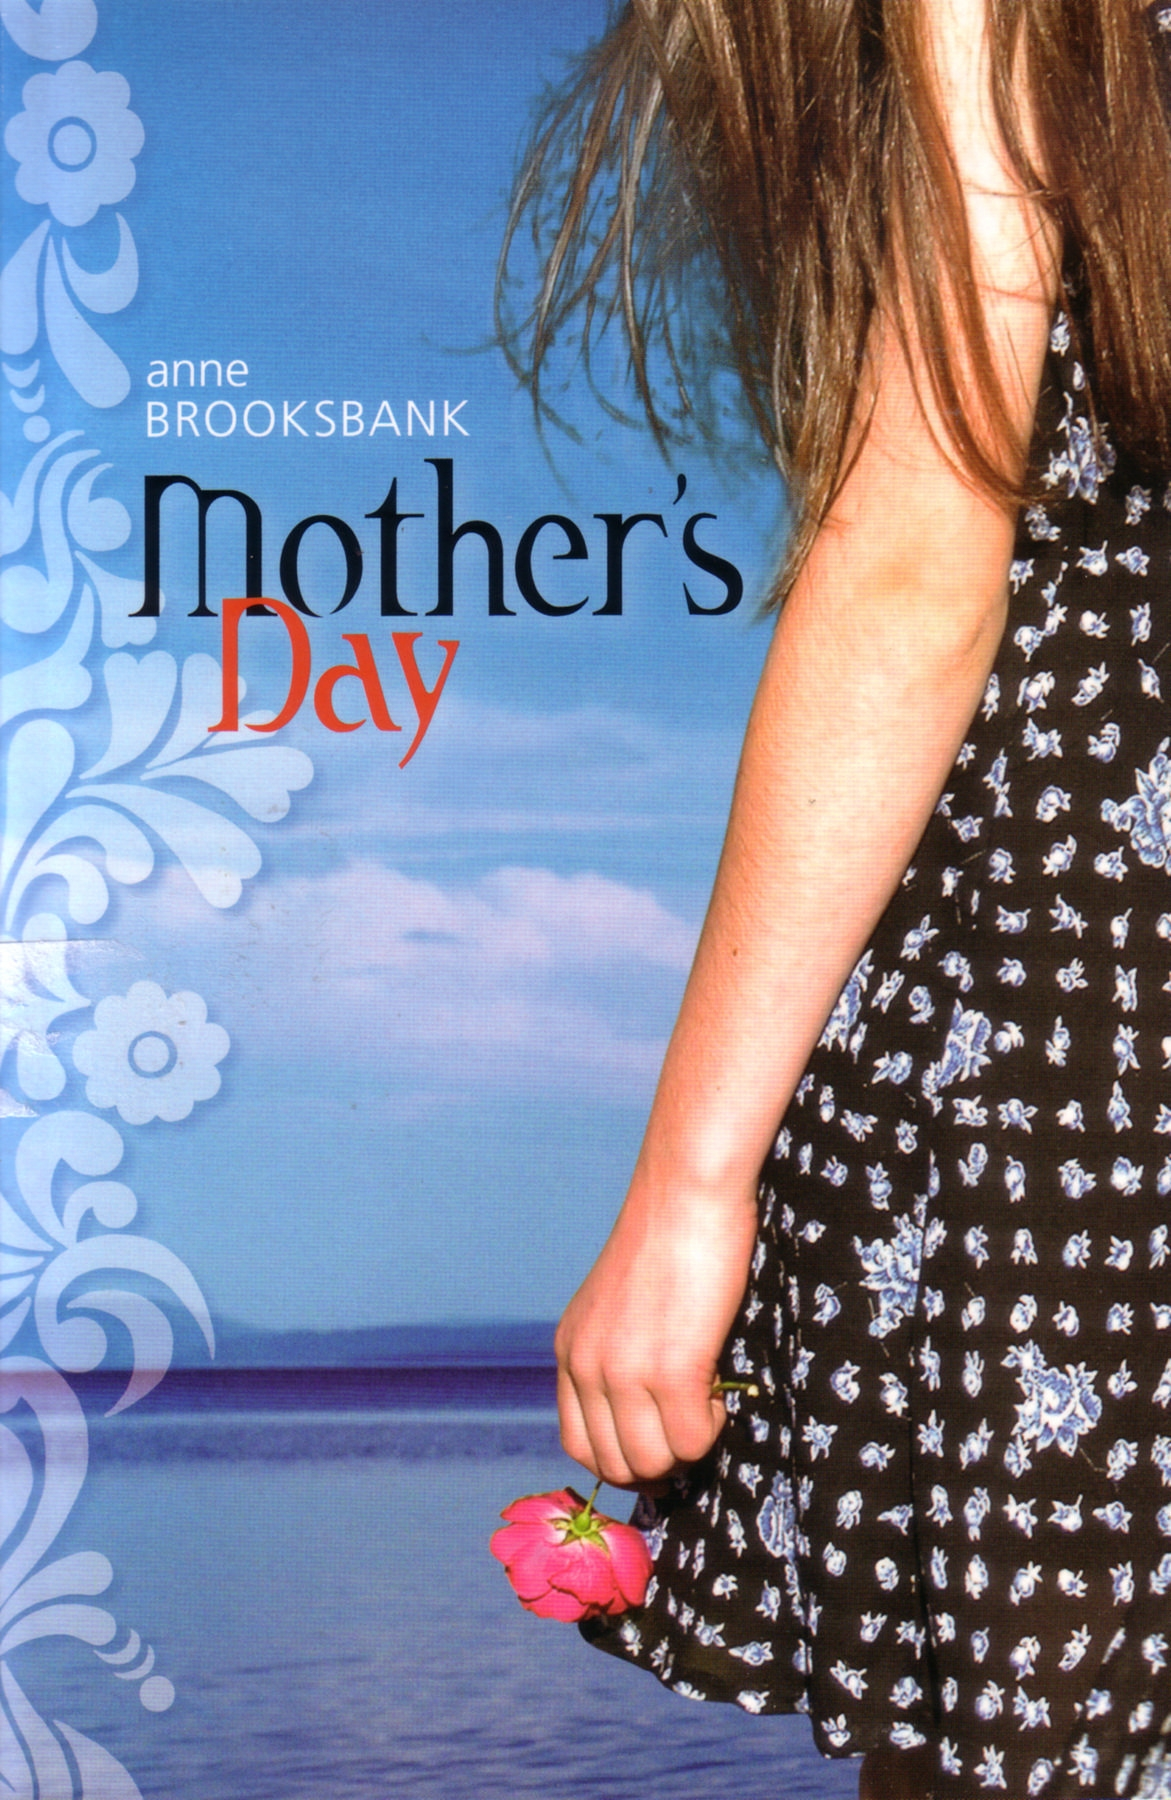 Mother's Day by Anne Brooksbank - Penguin Books Australia